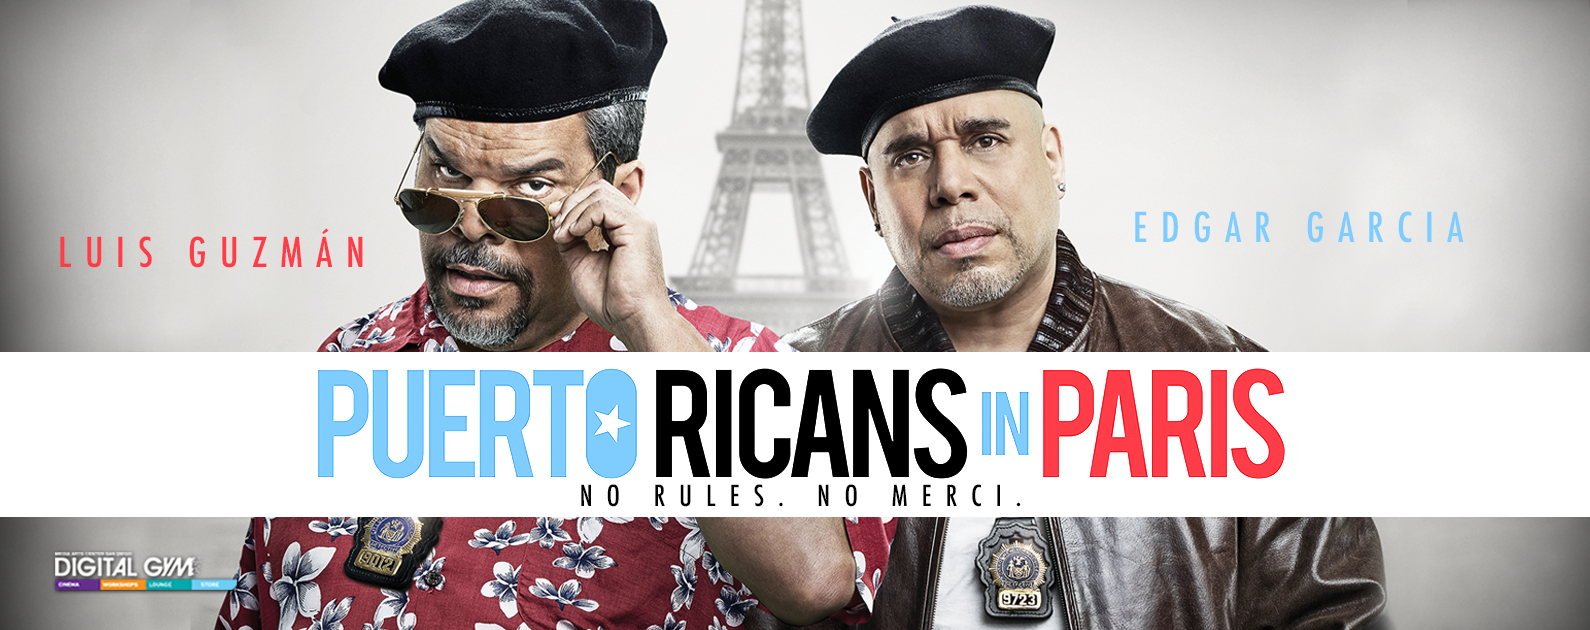 Luis Guzman in Comedy, Puerto Ricans in Paris, Returns to San Diego (June 17 – 23)